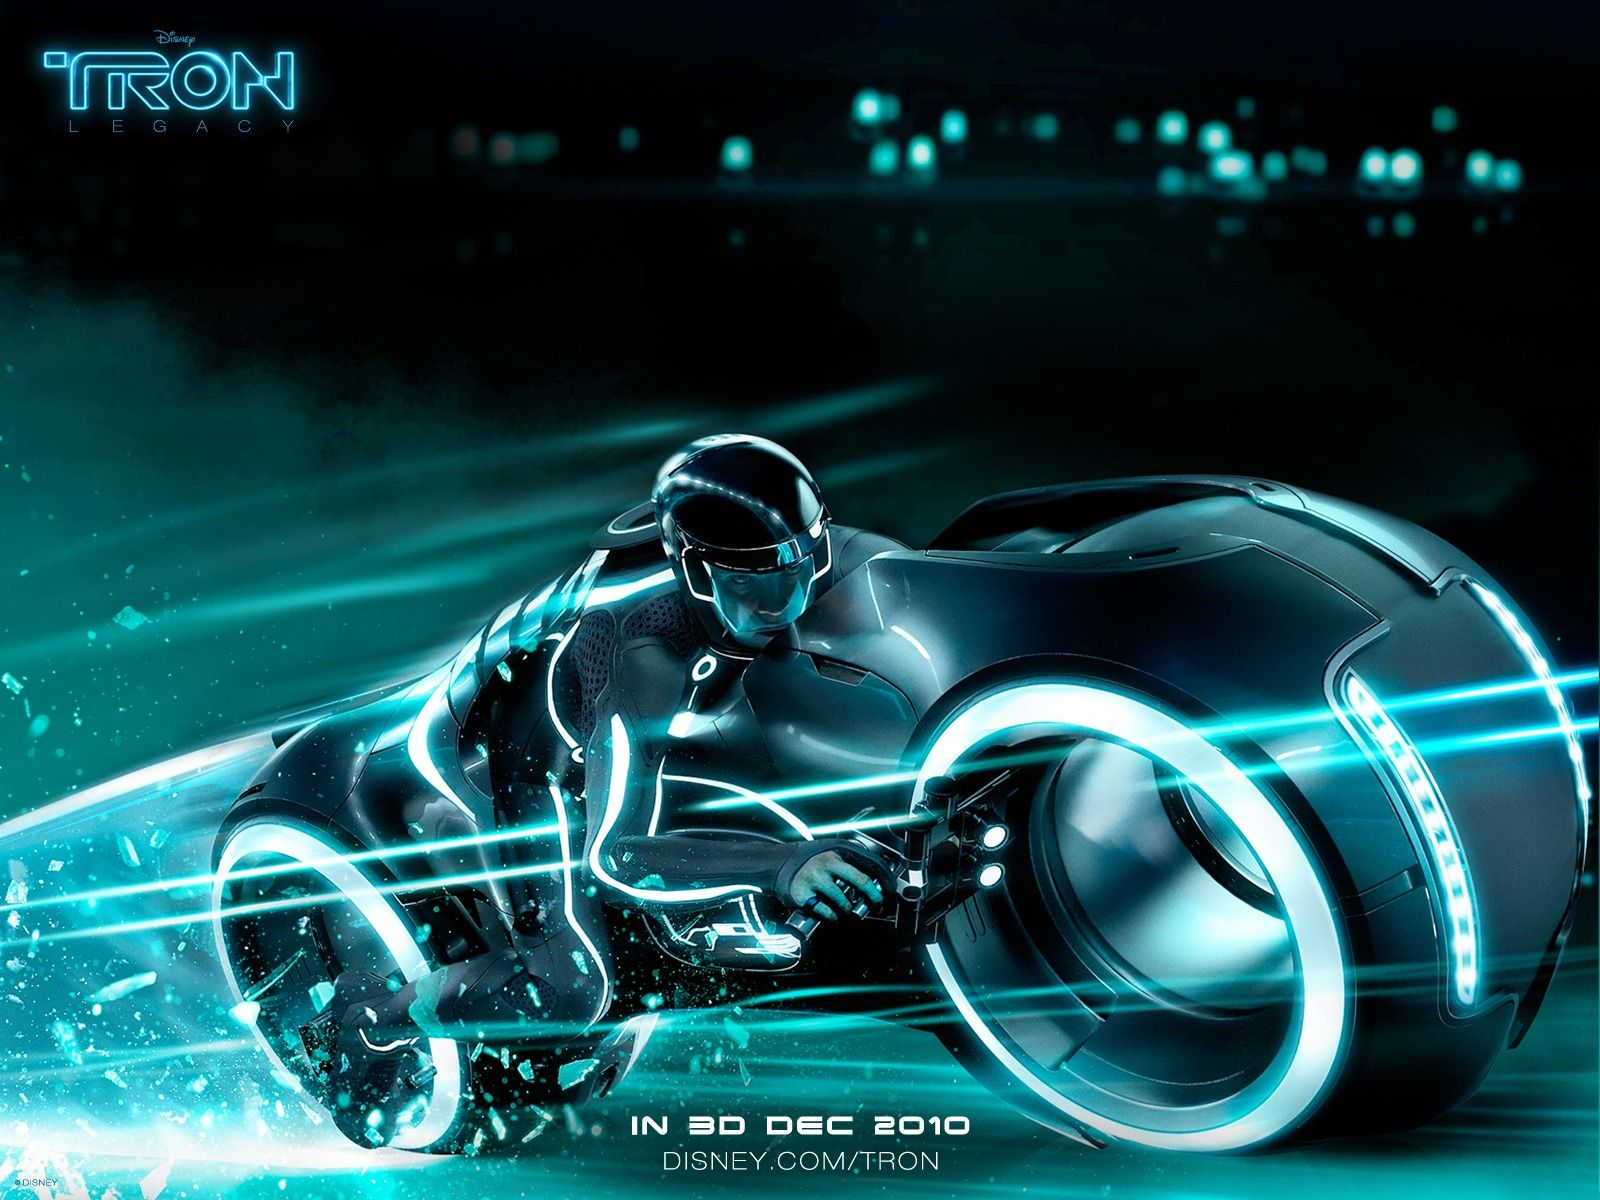 Tron Legacy 3d Wallpapers Tron Legacy 3d Download Tron Legacy 3d Pictures Tron Legacy Tron Bike Tron Light Cycle